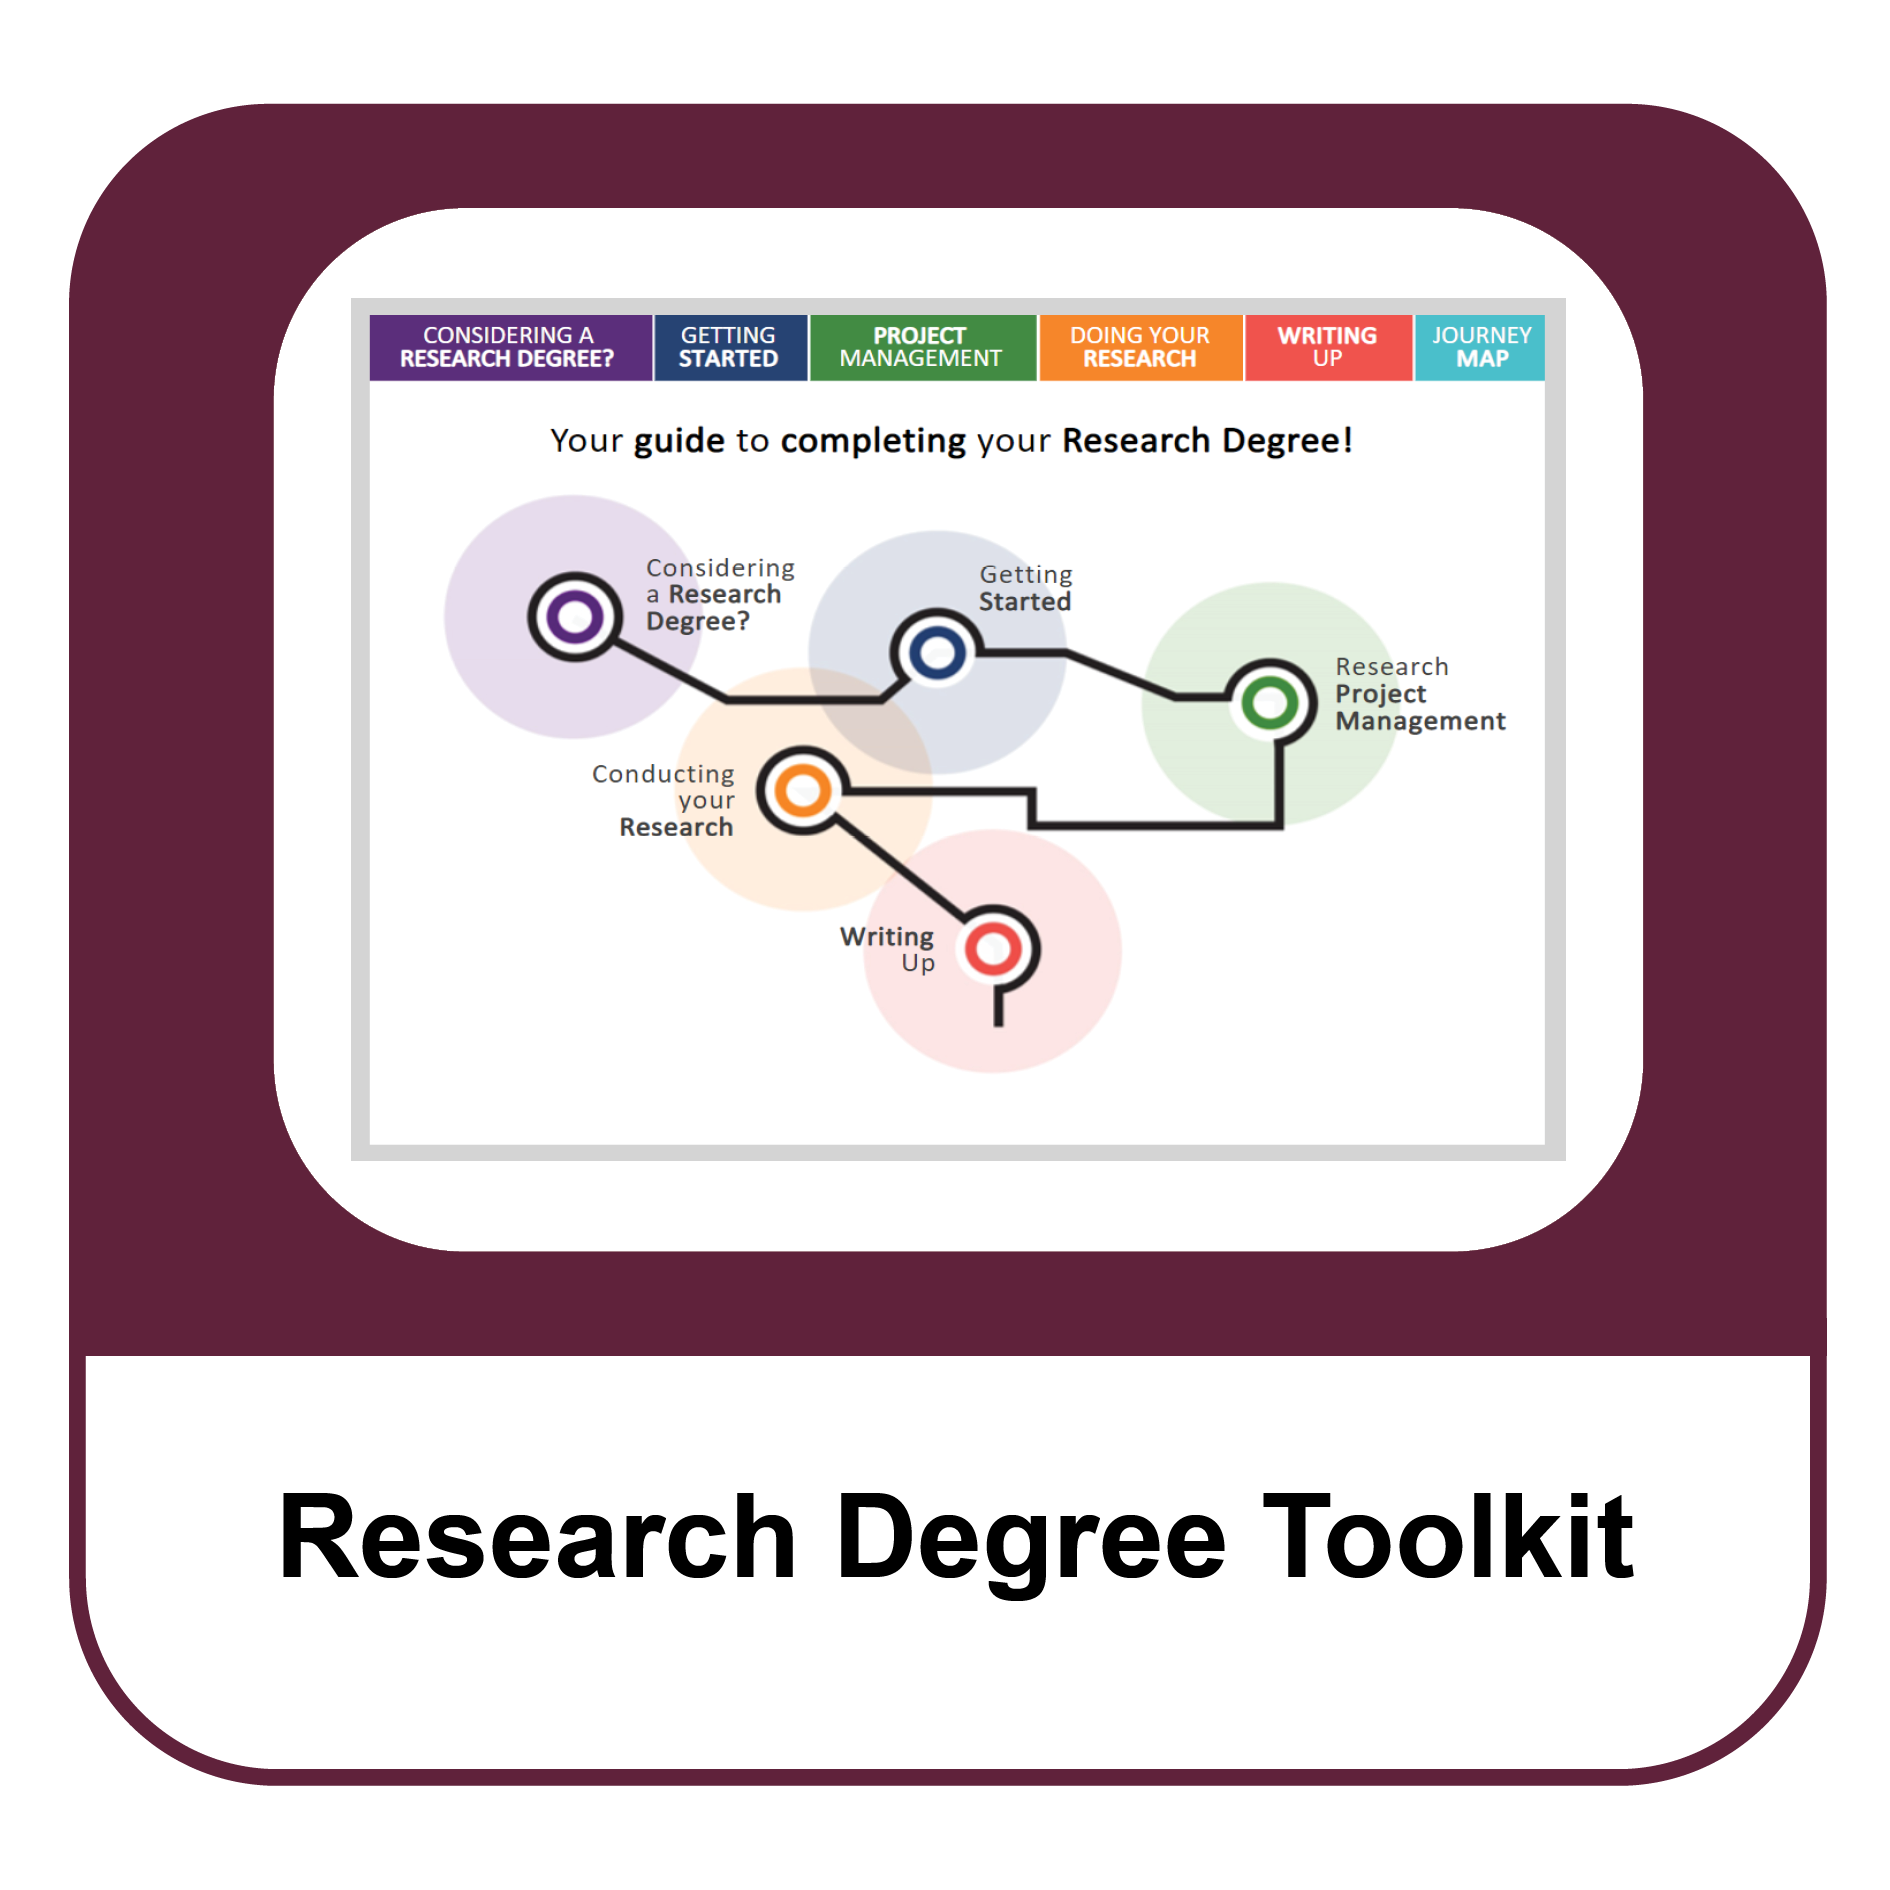 research degree toolkit icon resources.png